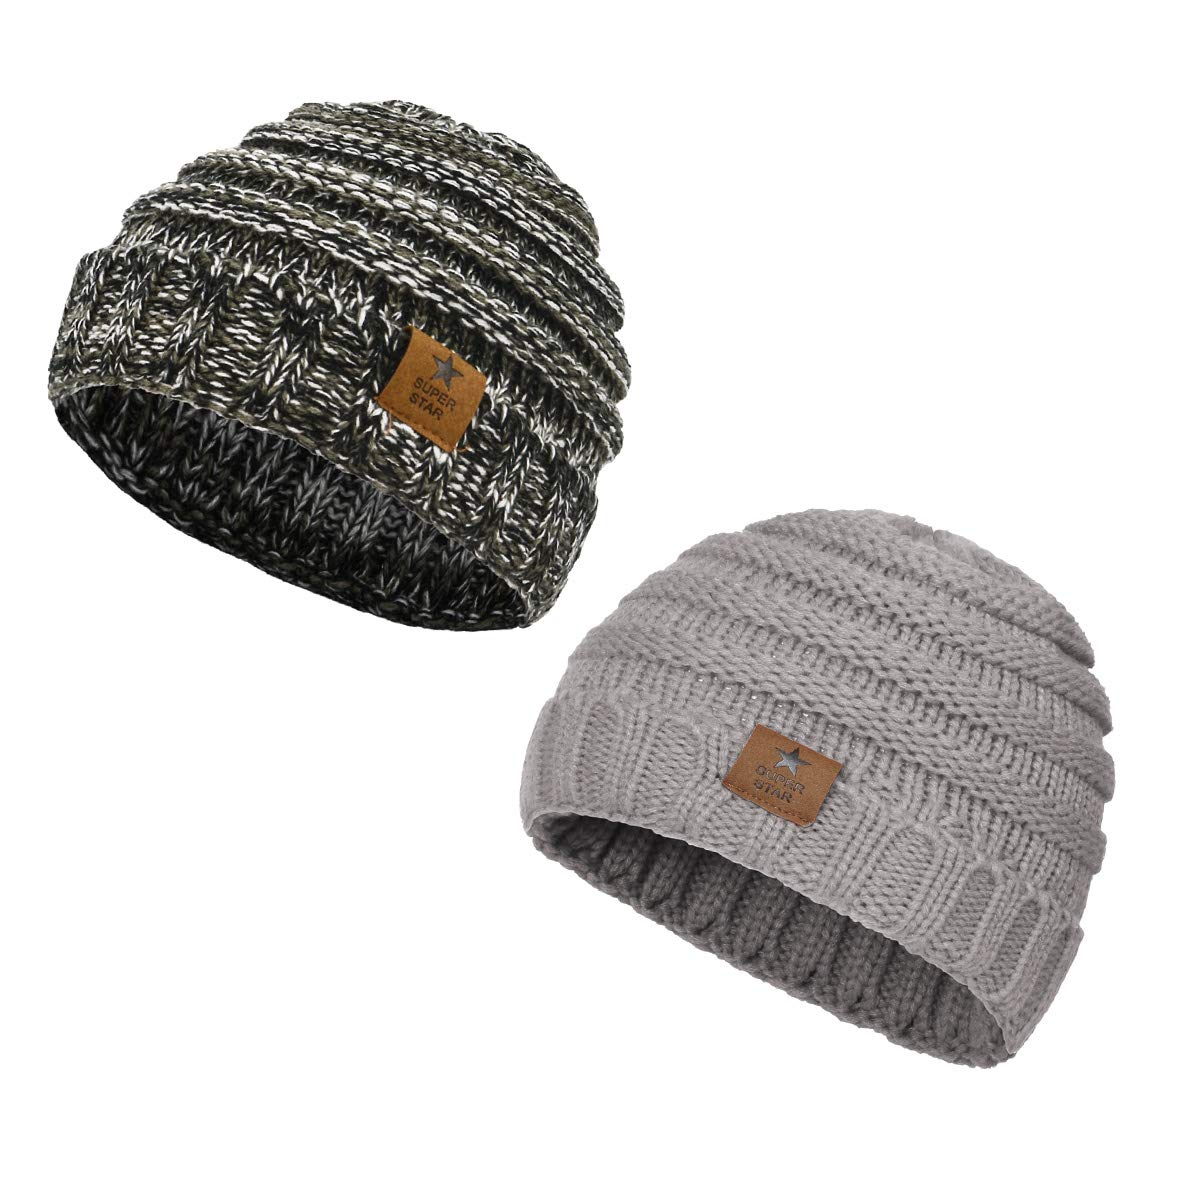 Amazon.com  Zando Baby Winter Hats Warm Knitted Cute Infant Toddler Beanies  Baby Beanies For Boys Girls 2 Pack Oreo 325fb473a36